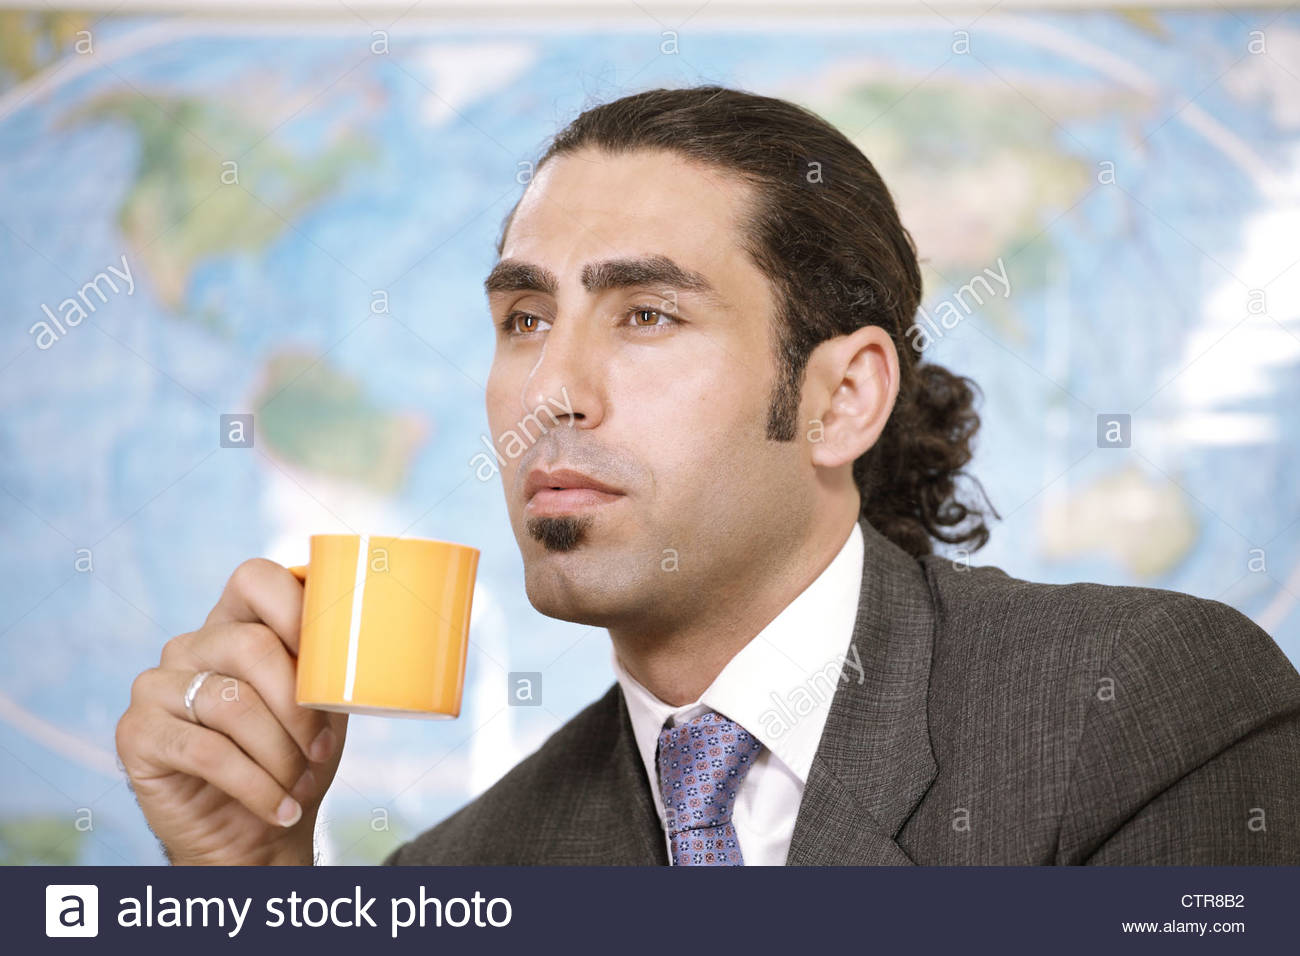 Business think - Stock Image